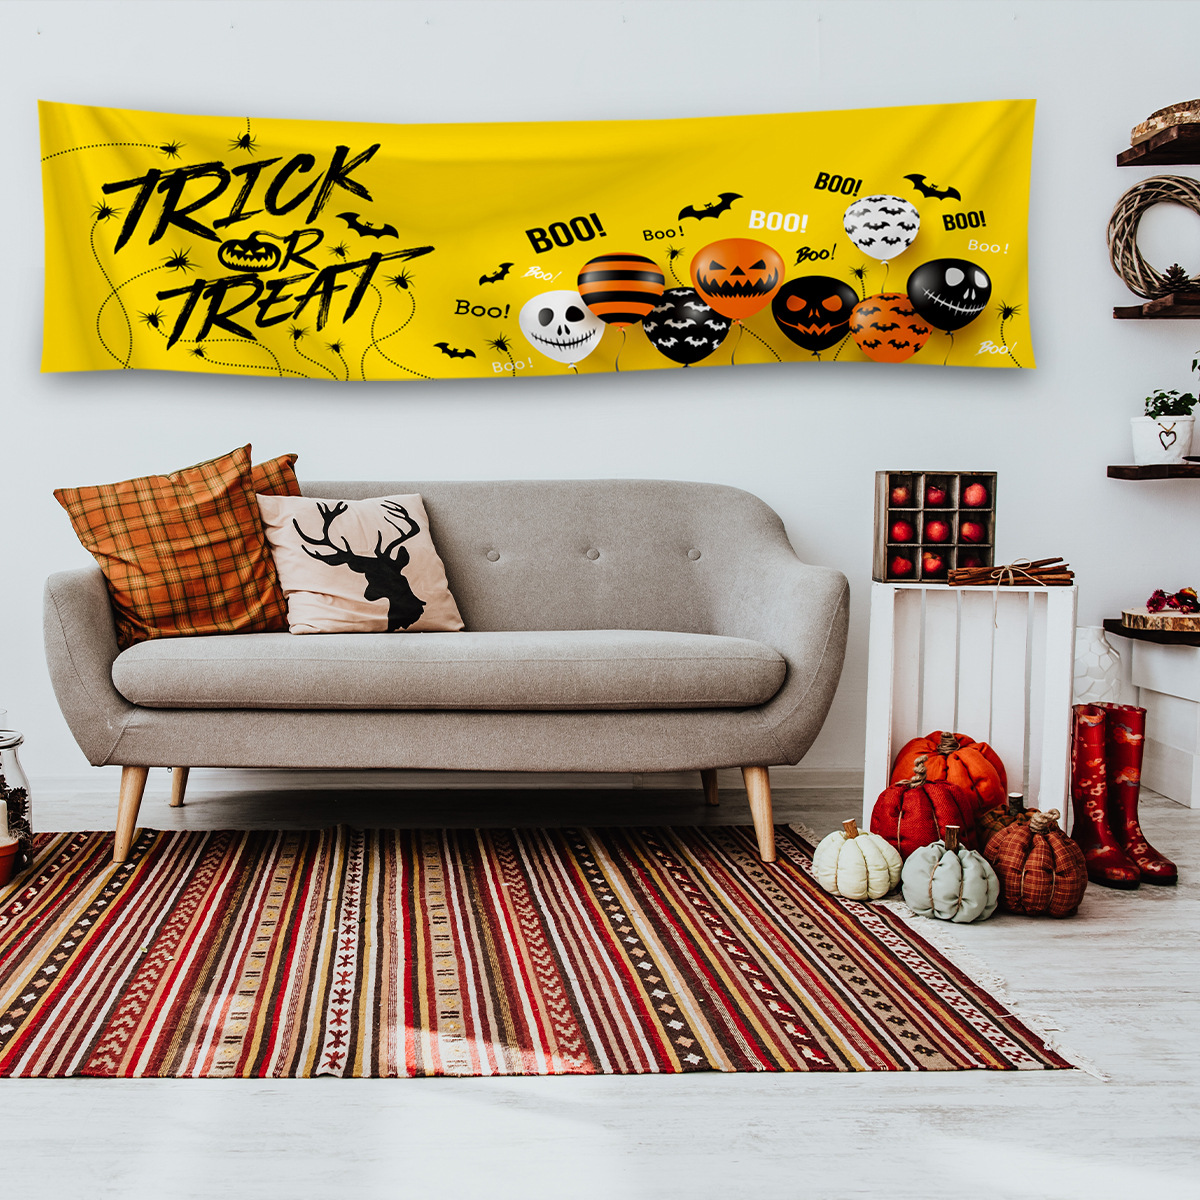 Spooky 'Trick or Treat' Banner for Halloween Decoration Inspiration